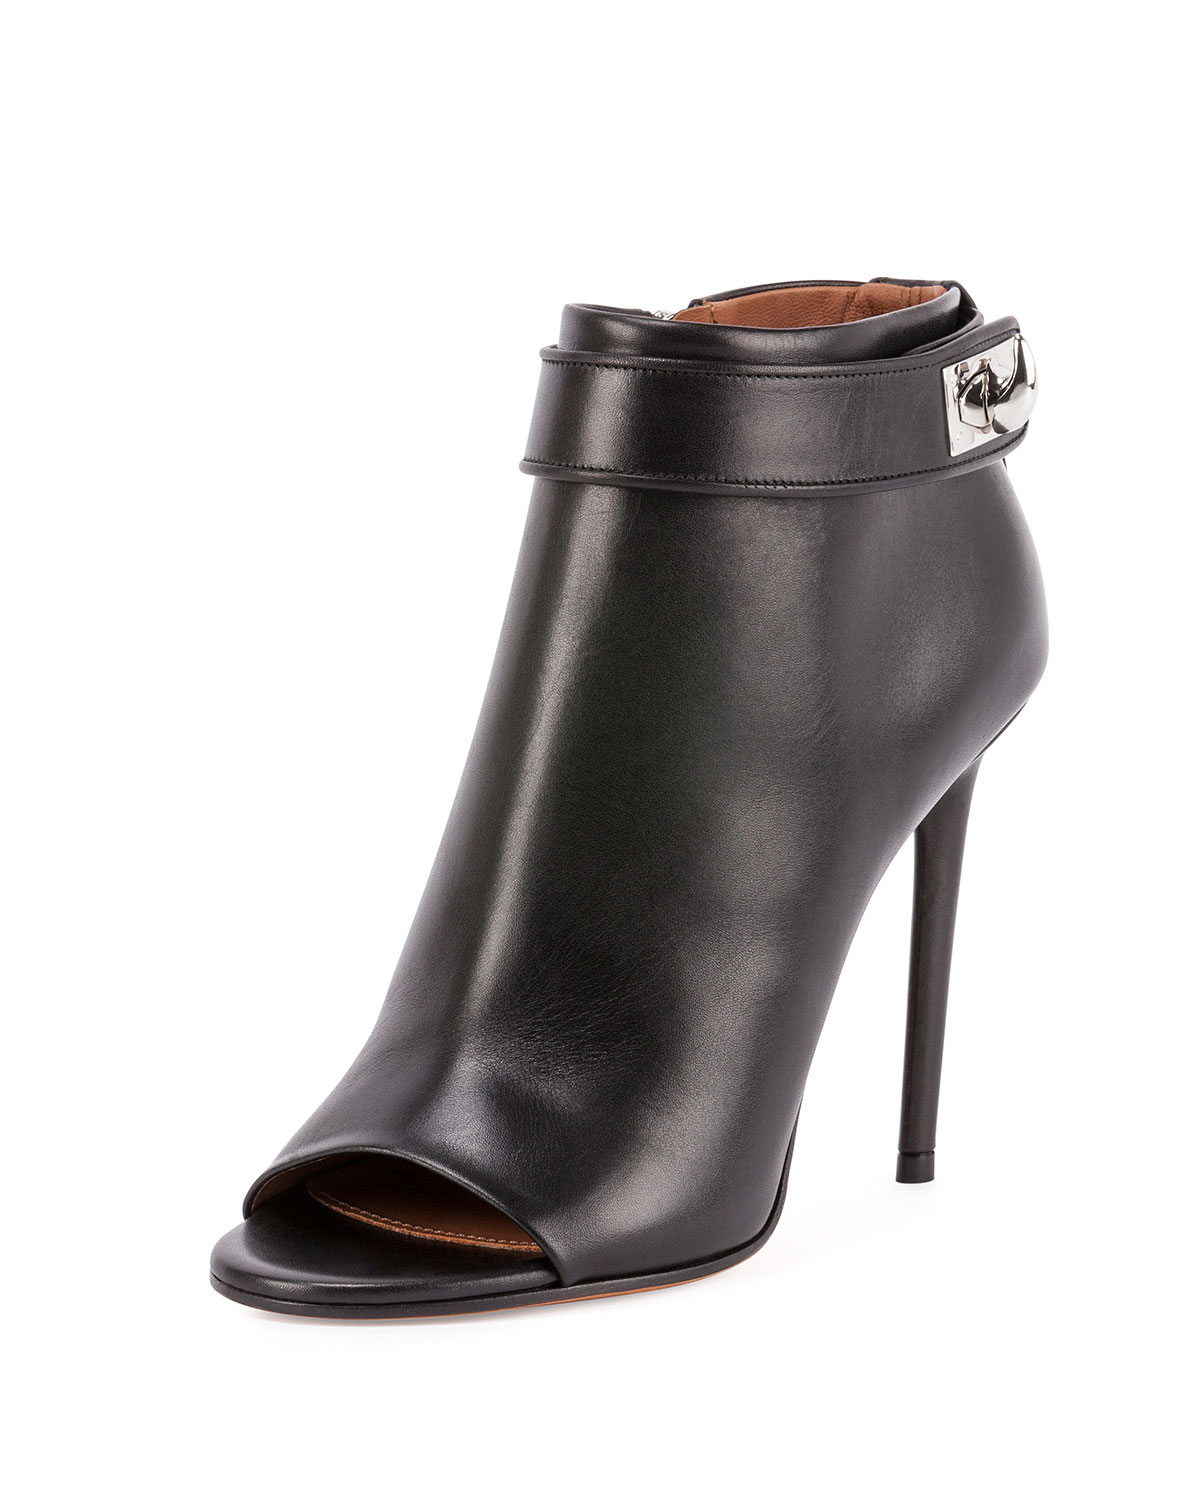 Shark-Lock Open-Toe Bootie, Black - Givenchy